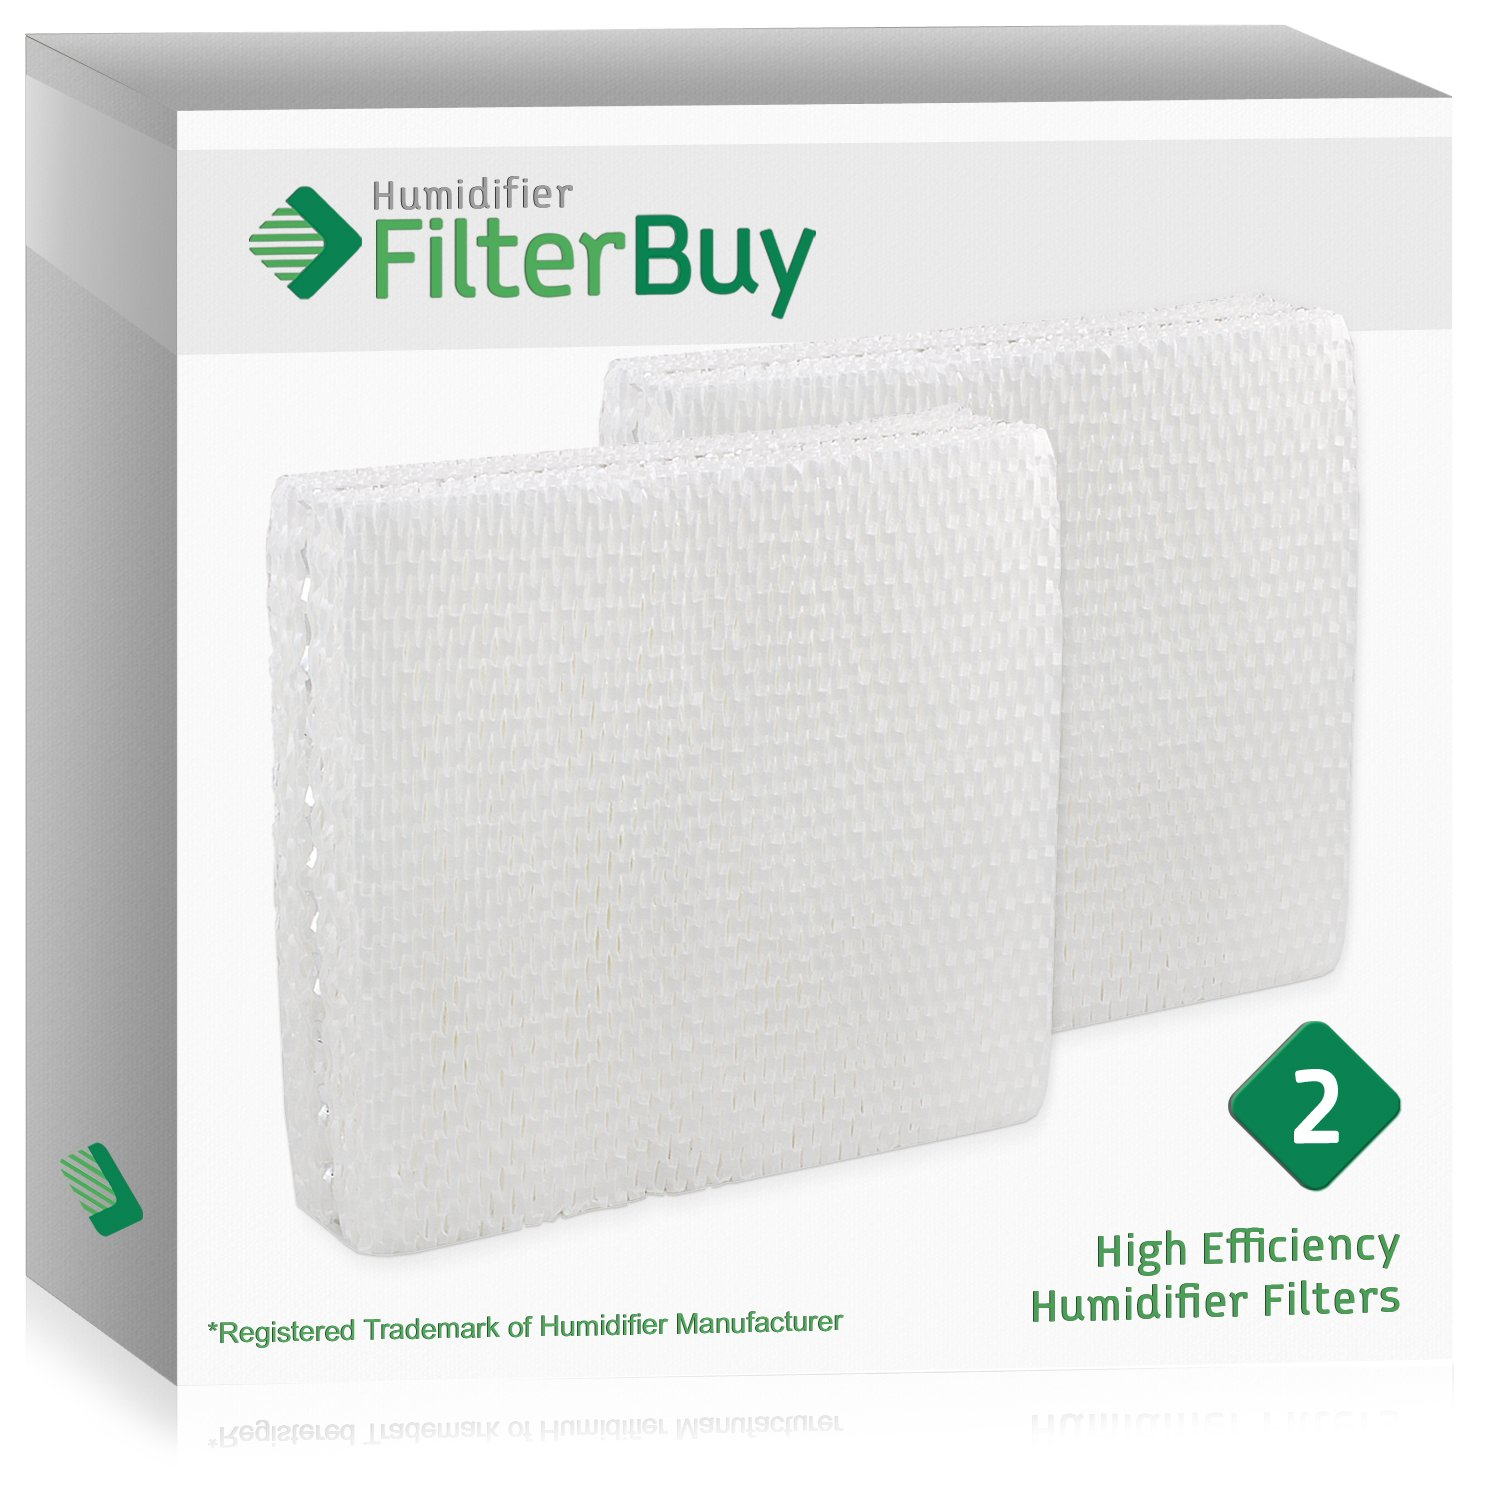 FilterBuy Replacement Humidifier Filters Compatible with Lasko THF15, Duracraft AC-809 & AC-815, Sears Kenmore 14809. Pack of 2.